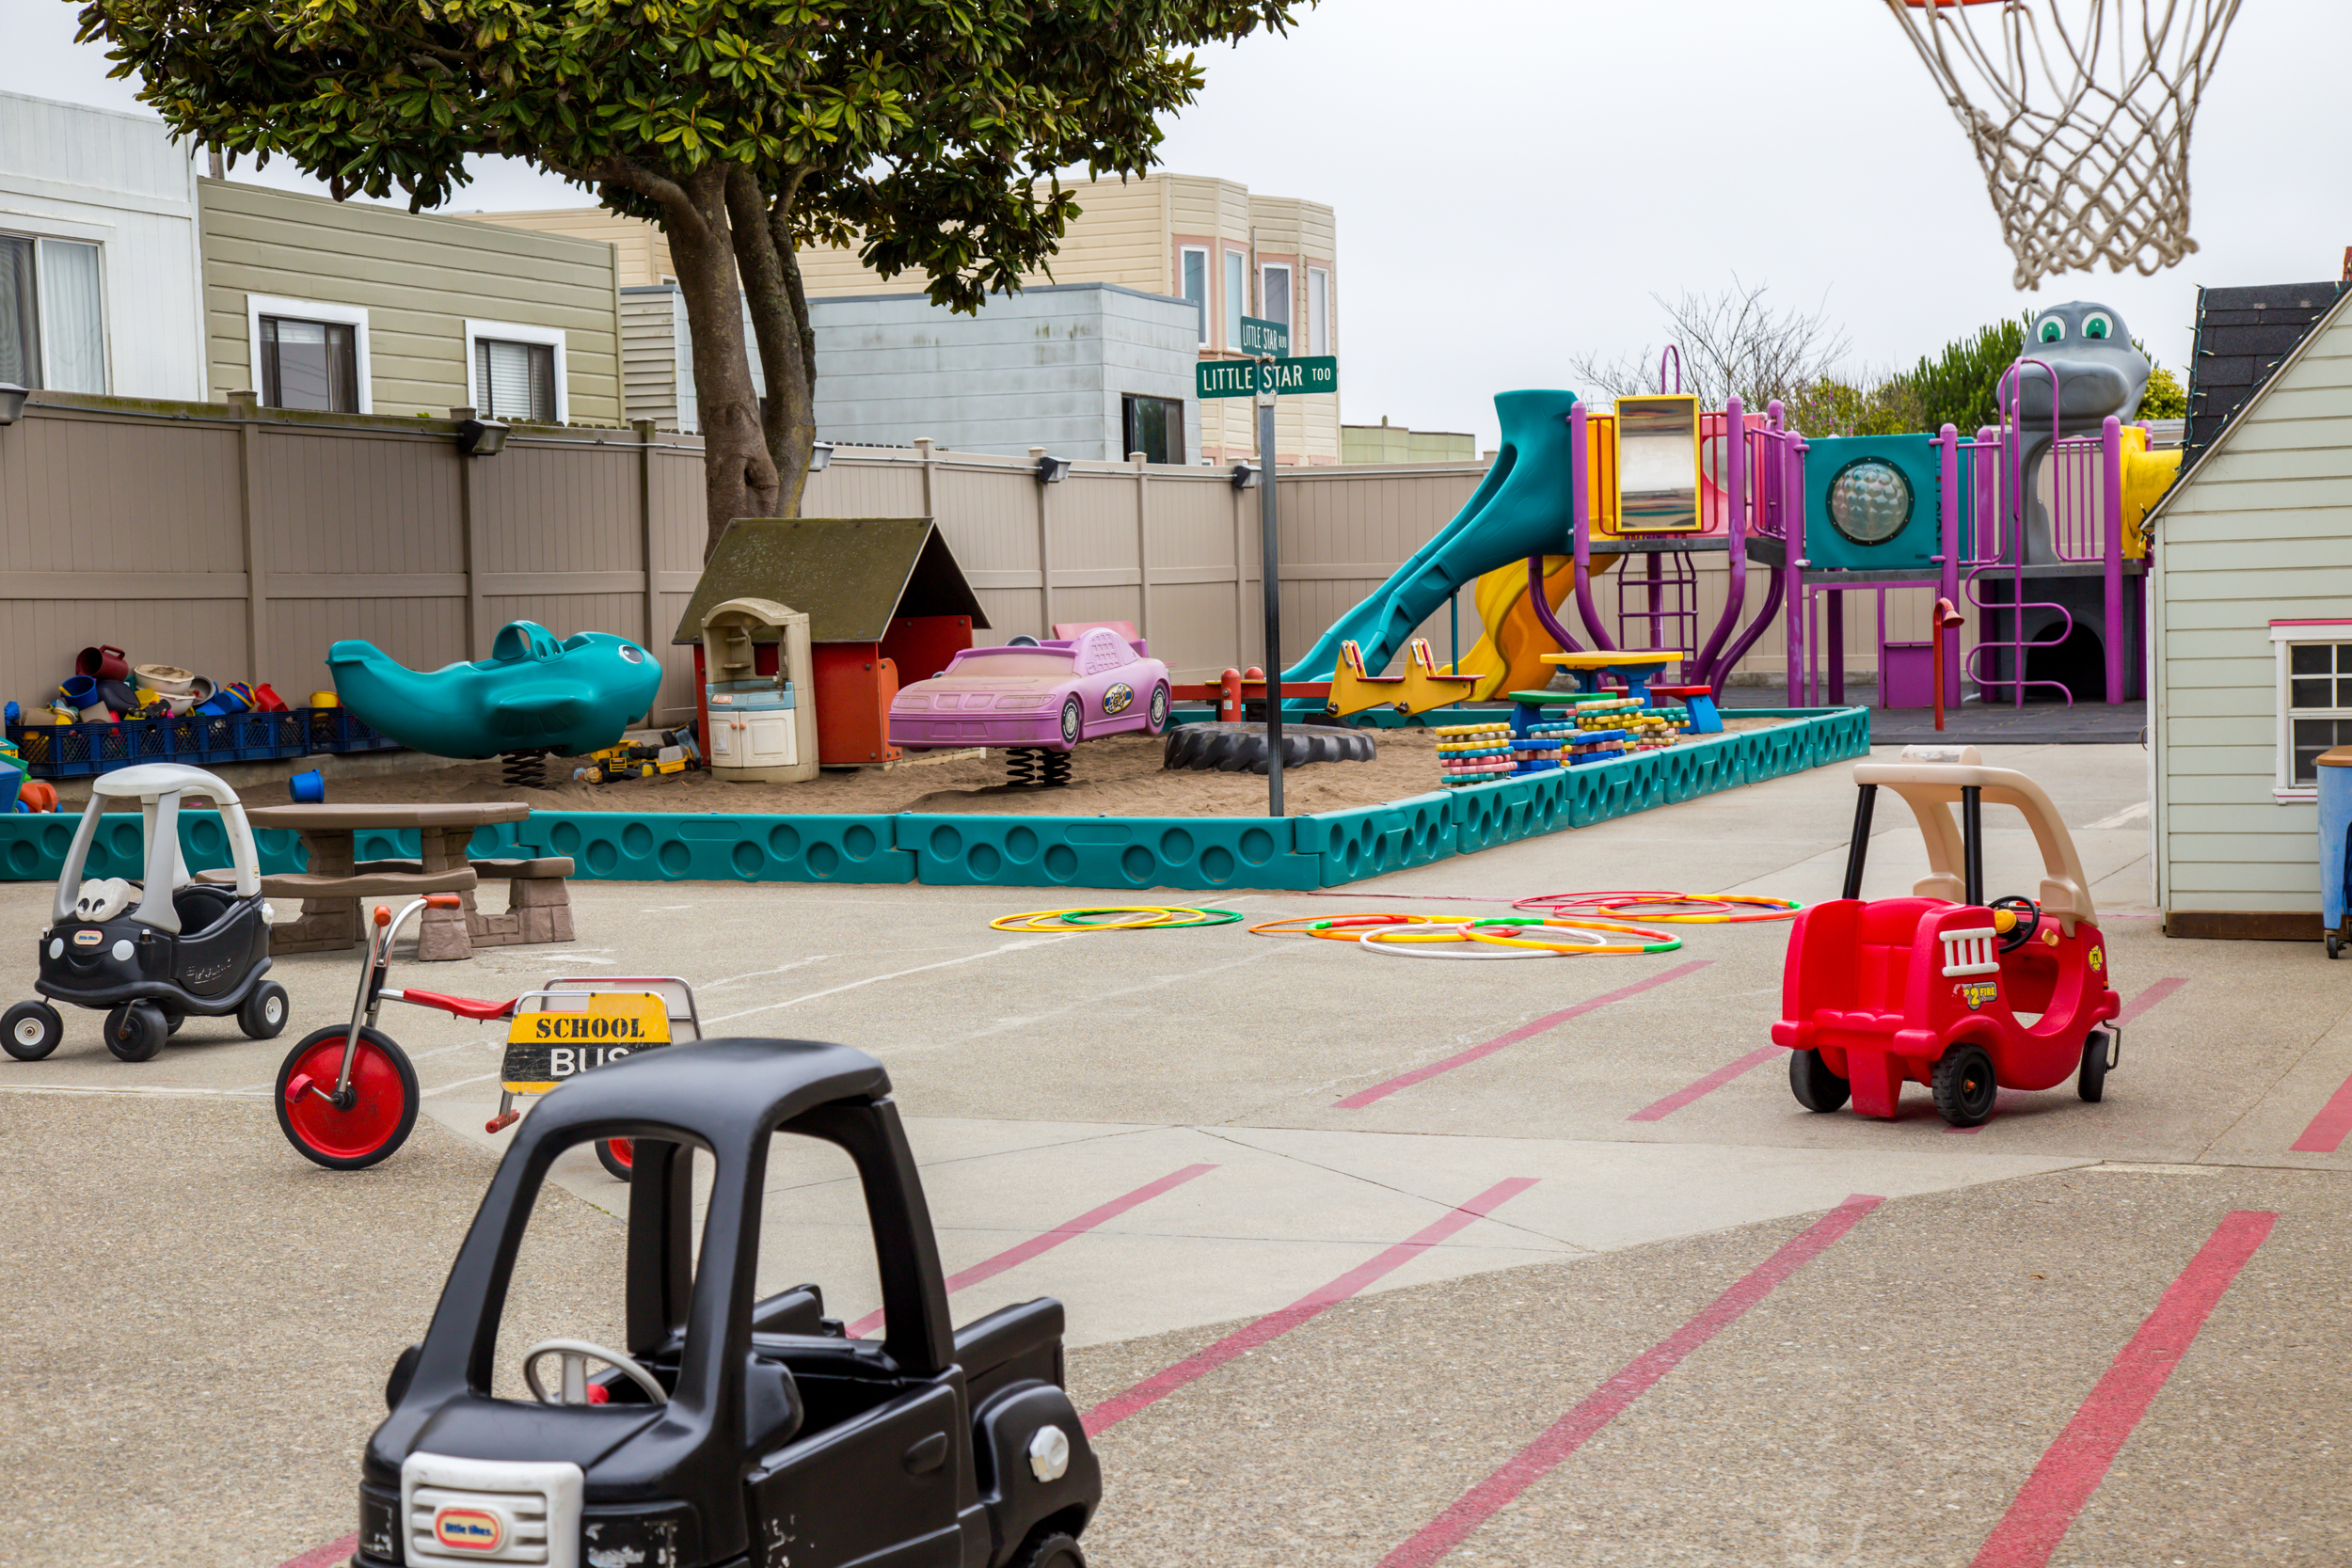 Other areas of our spacious yard include severalbasketball hoops of different heights, cars, bicycles, and scooters, and a large sandbox.